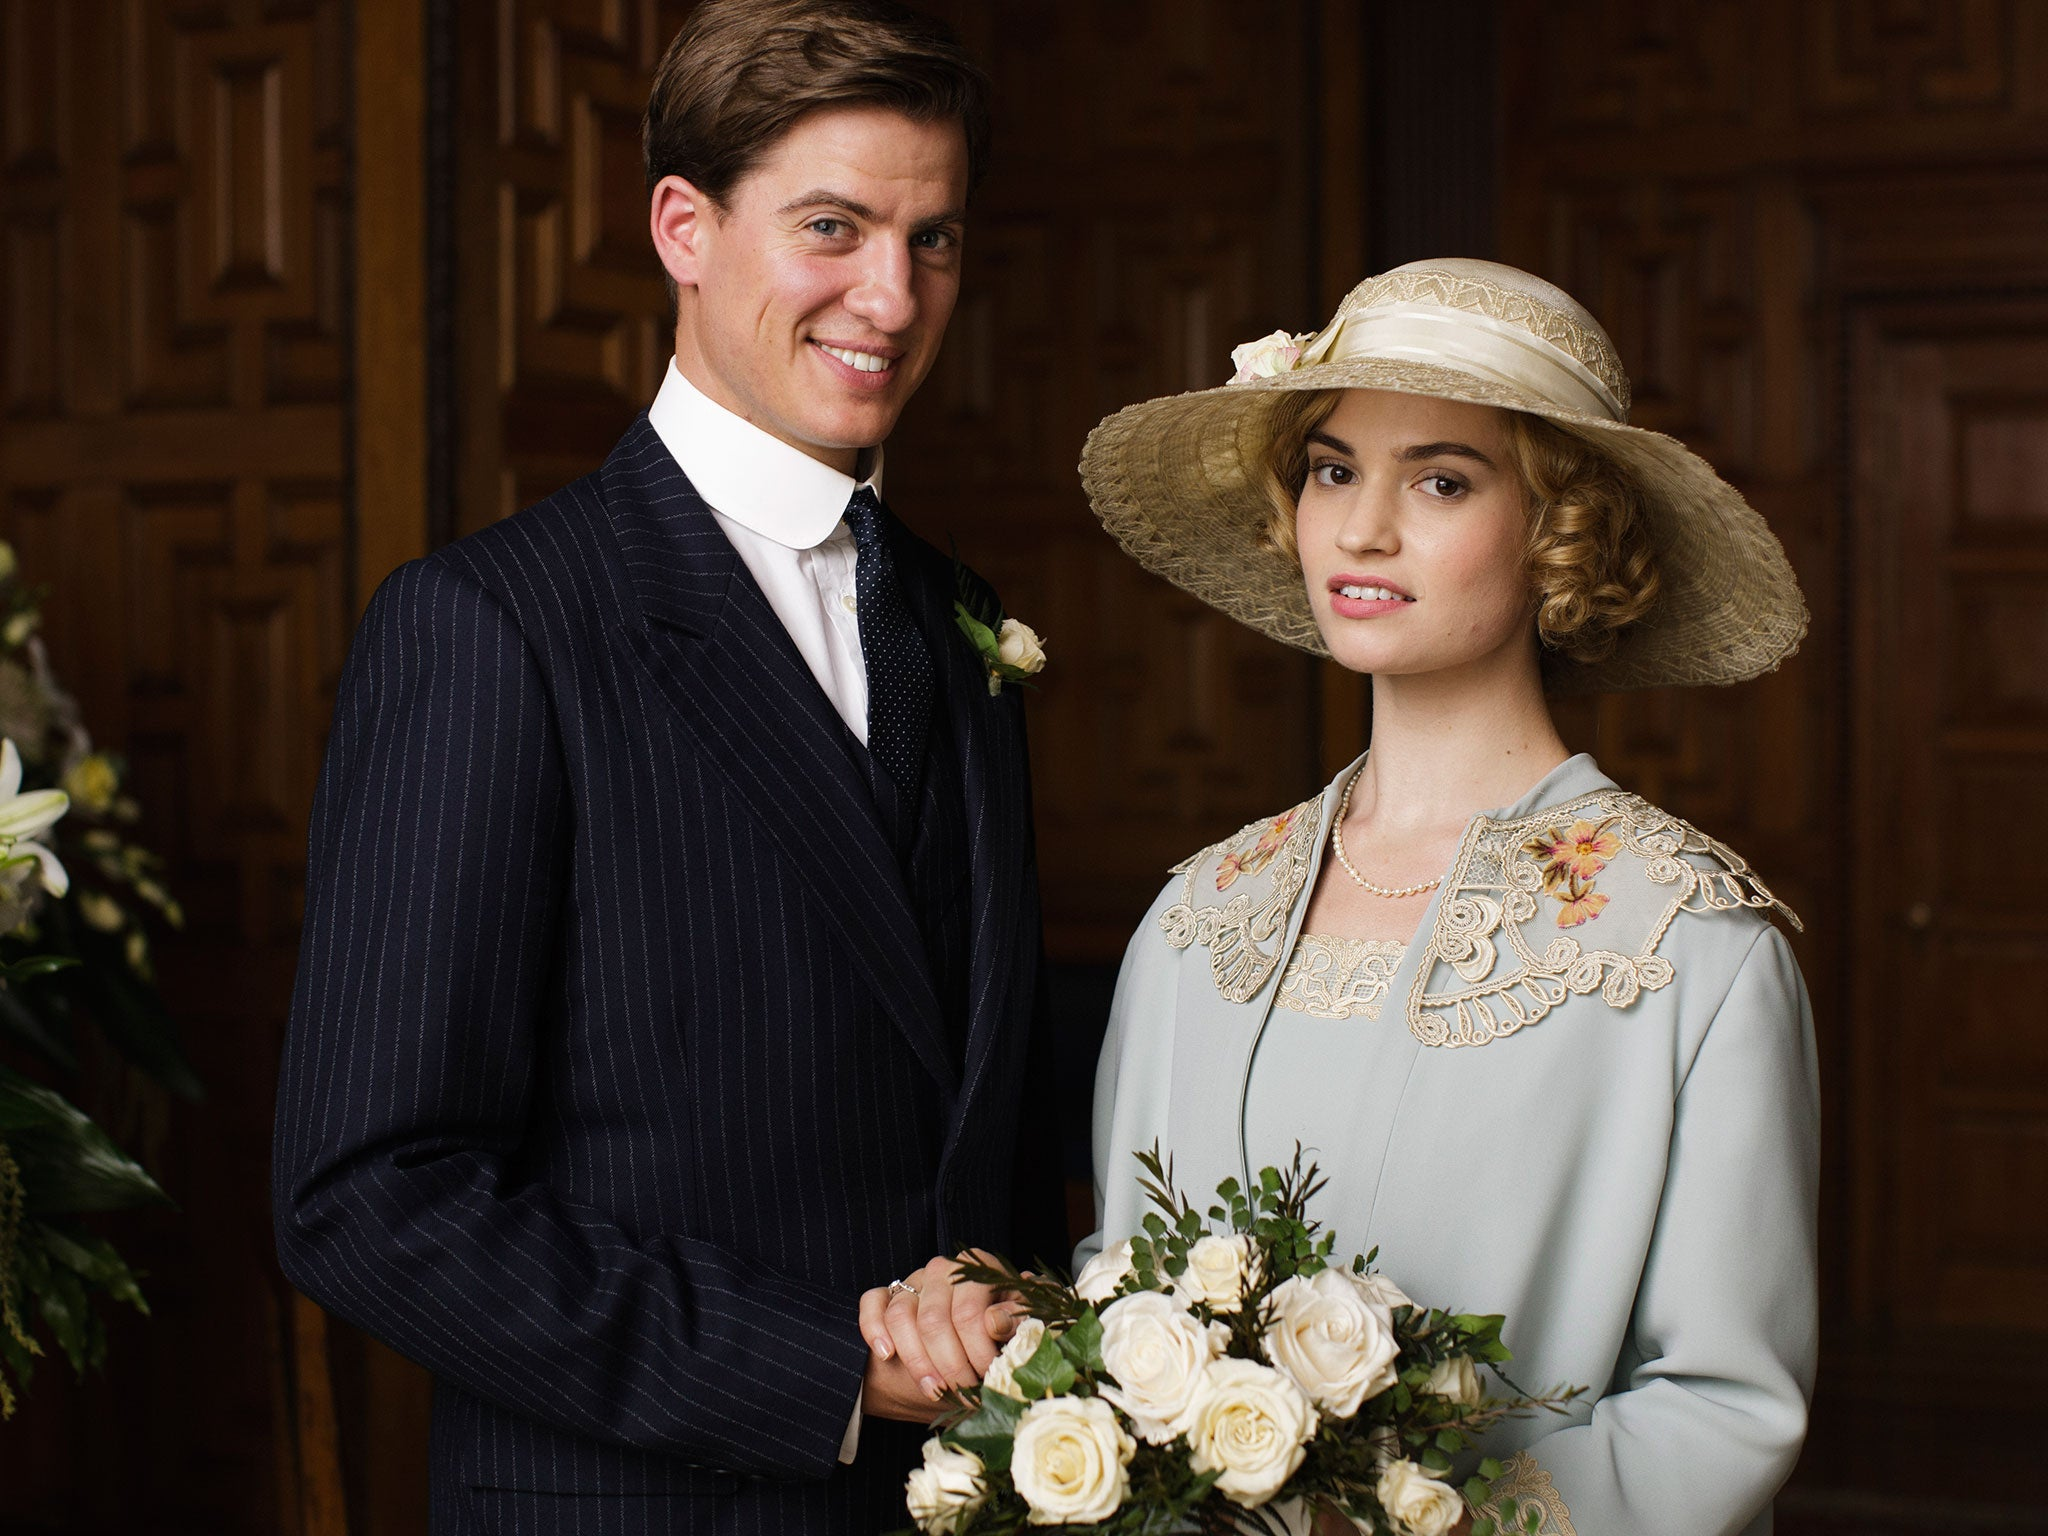 downton abbey season 5 finale review even lady rose and